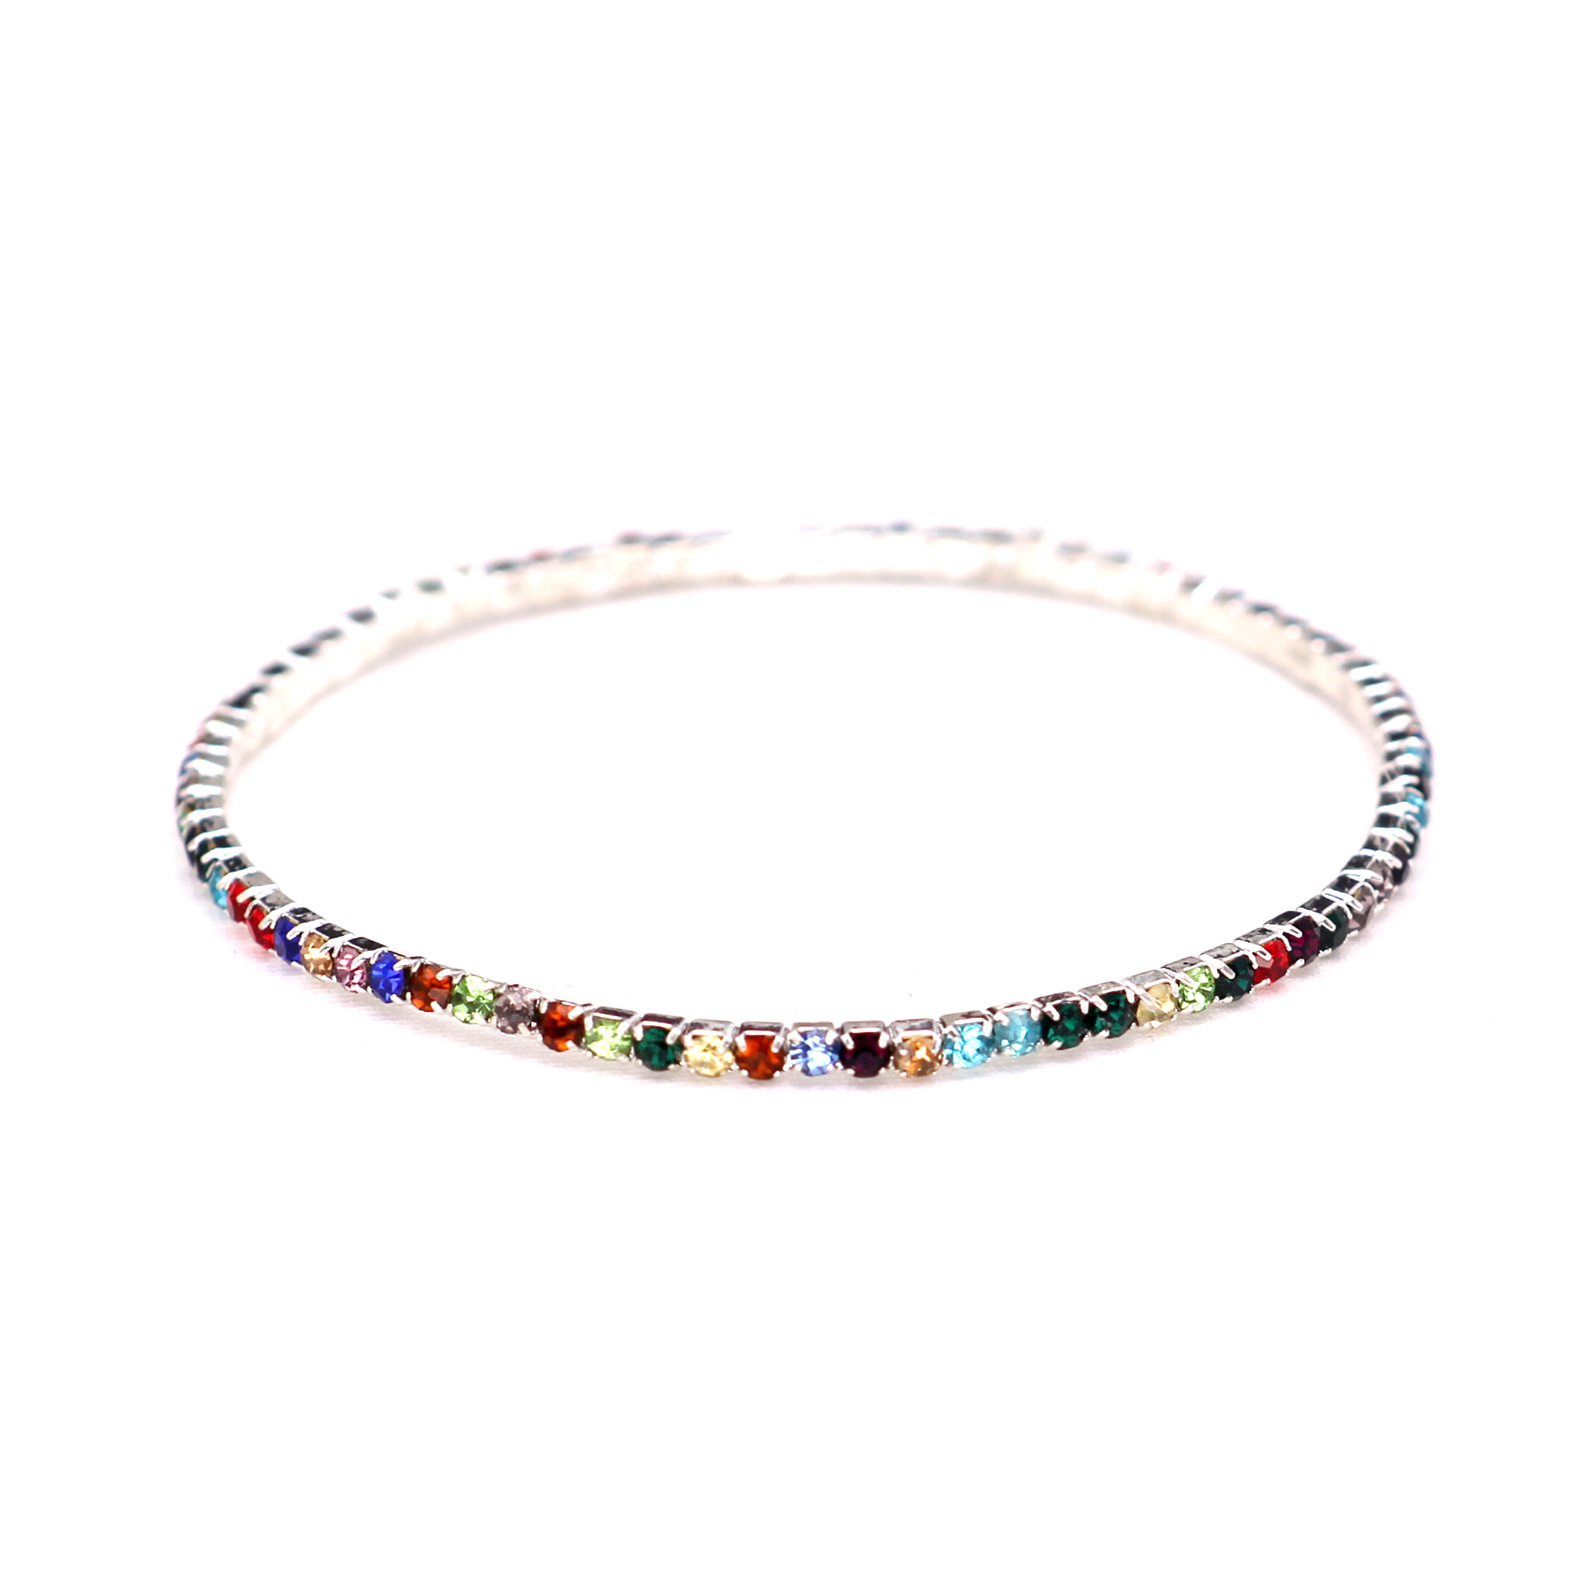 Simple crystalBracelet (Ultra-fine silver color diamond-k9)NHIM0772-Ultra-fine silver color diamond-k9